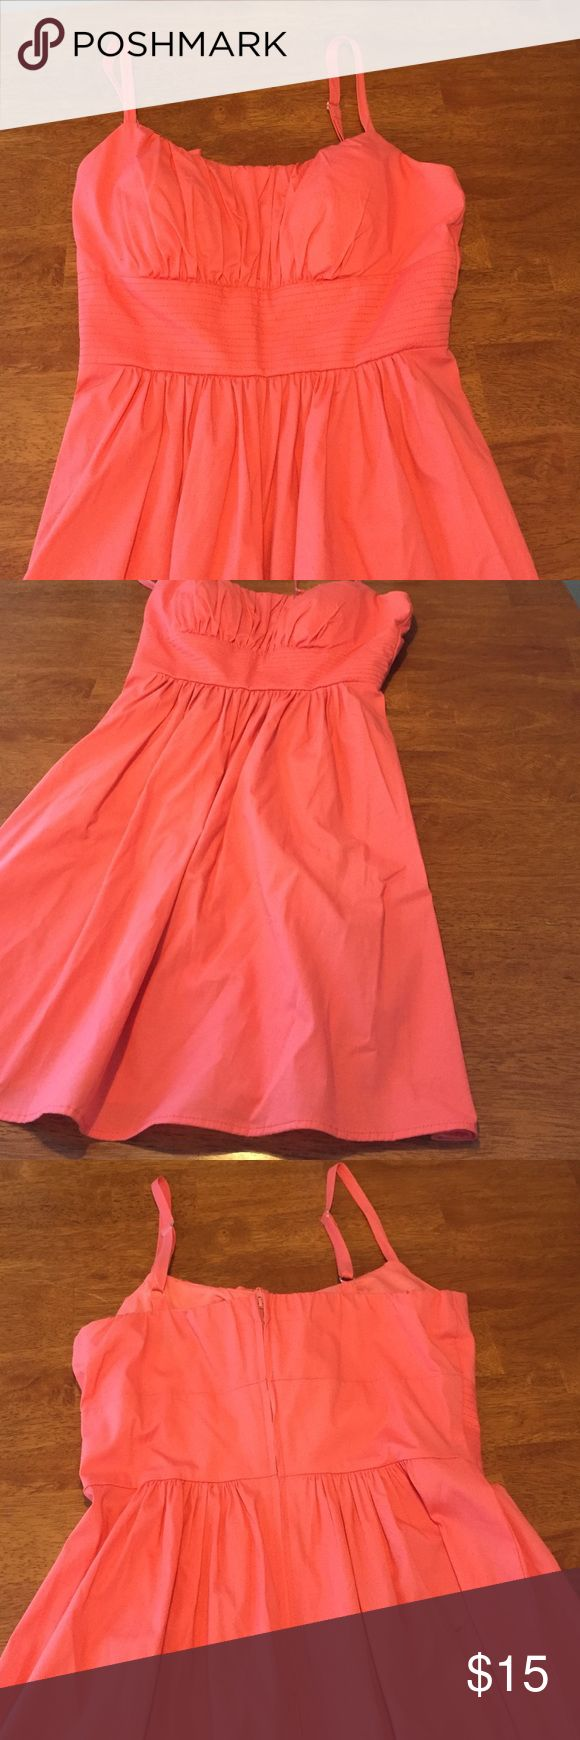 Coral flowy dress. Great condition looks like new! Coral colored. Adjustable straps. Padding in the boobs. Thick waistband. Great summer dress. Feel free to bundle especially with the white polka dot dress. No trades sorry. Obviously just needs a little ironing which i can do easily before shipping it out. B. Smart Dresses Mini